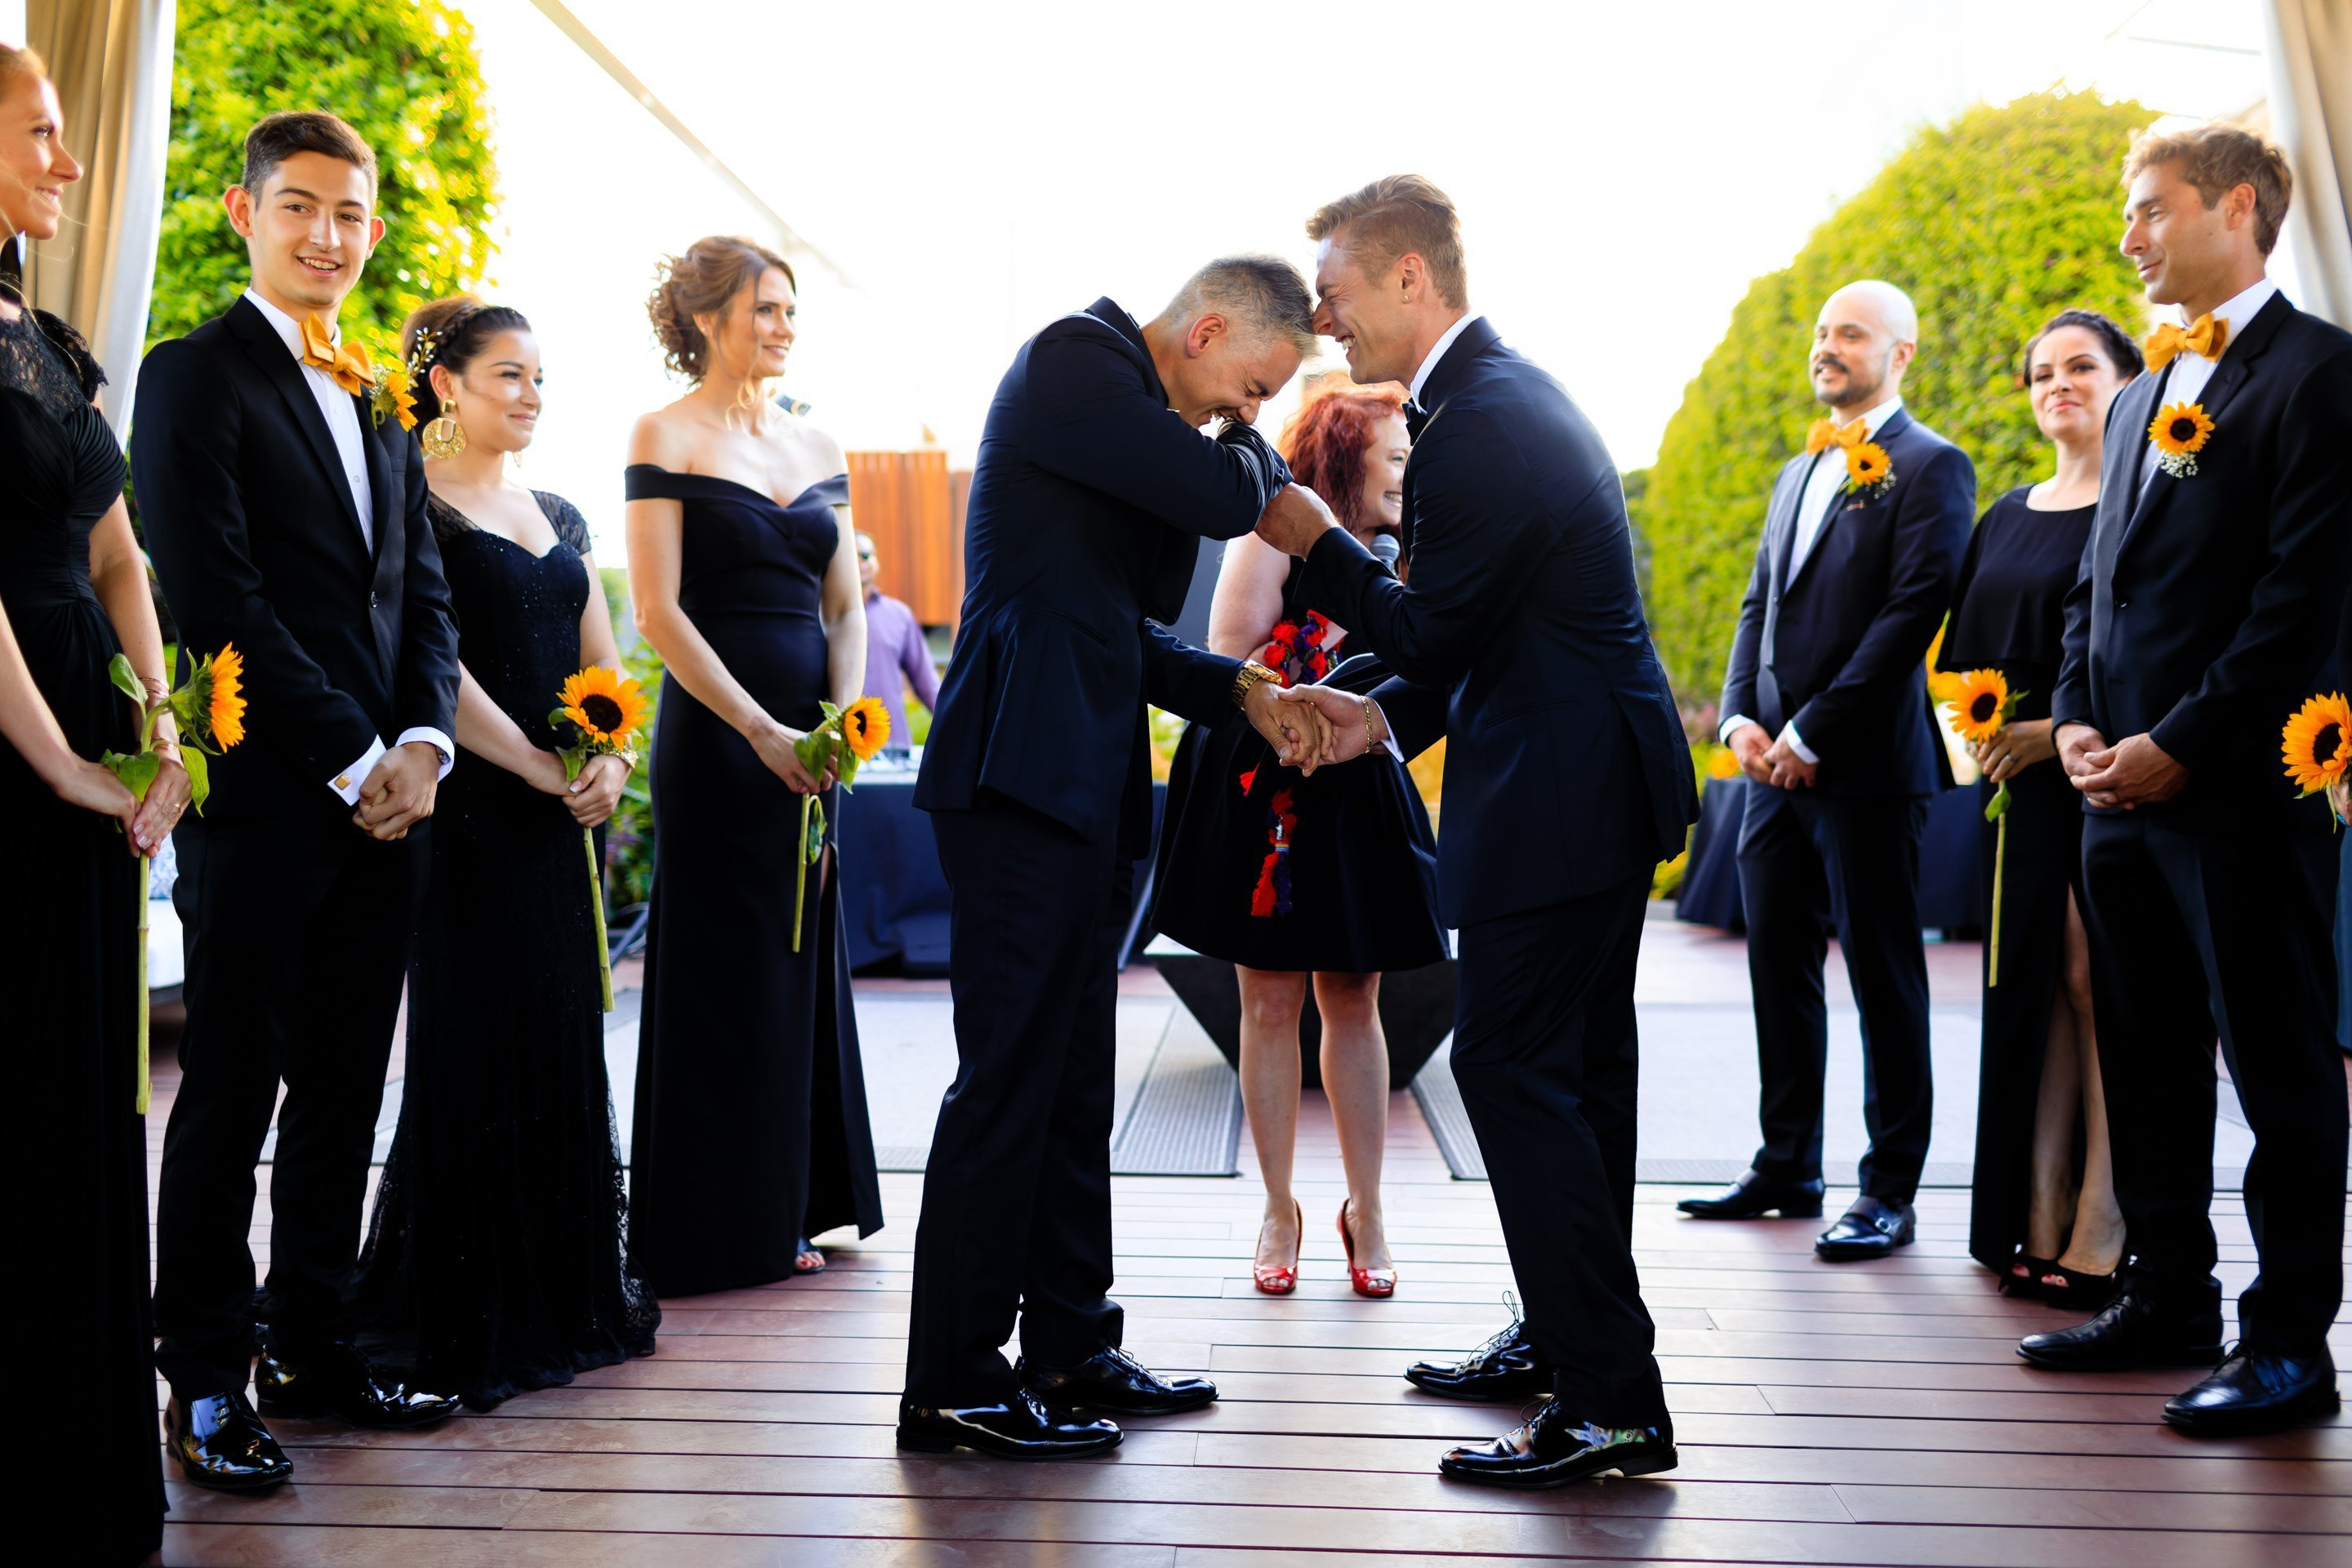 los-angeles-rooftop-same-sex-wedding-w-hollywood-bespoke-bridal-photography-arpit-mehta-visual-artist-18